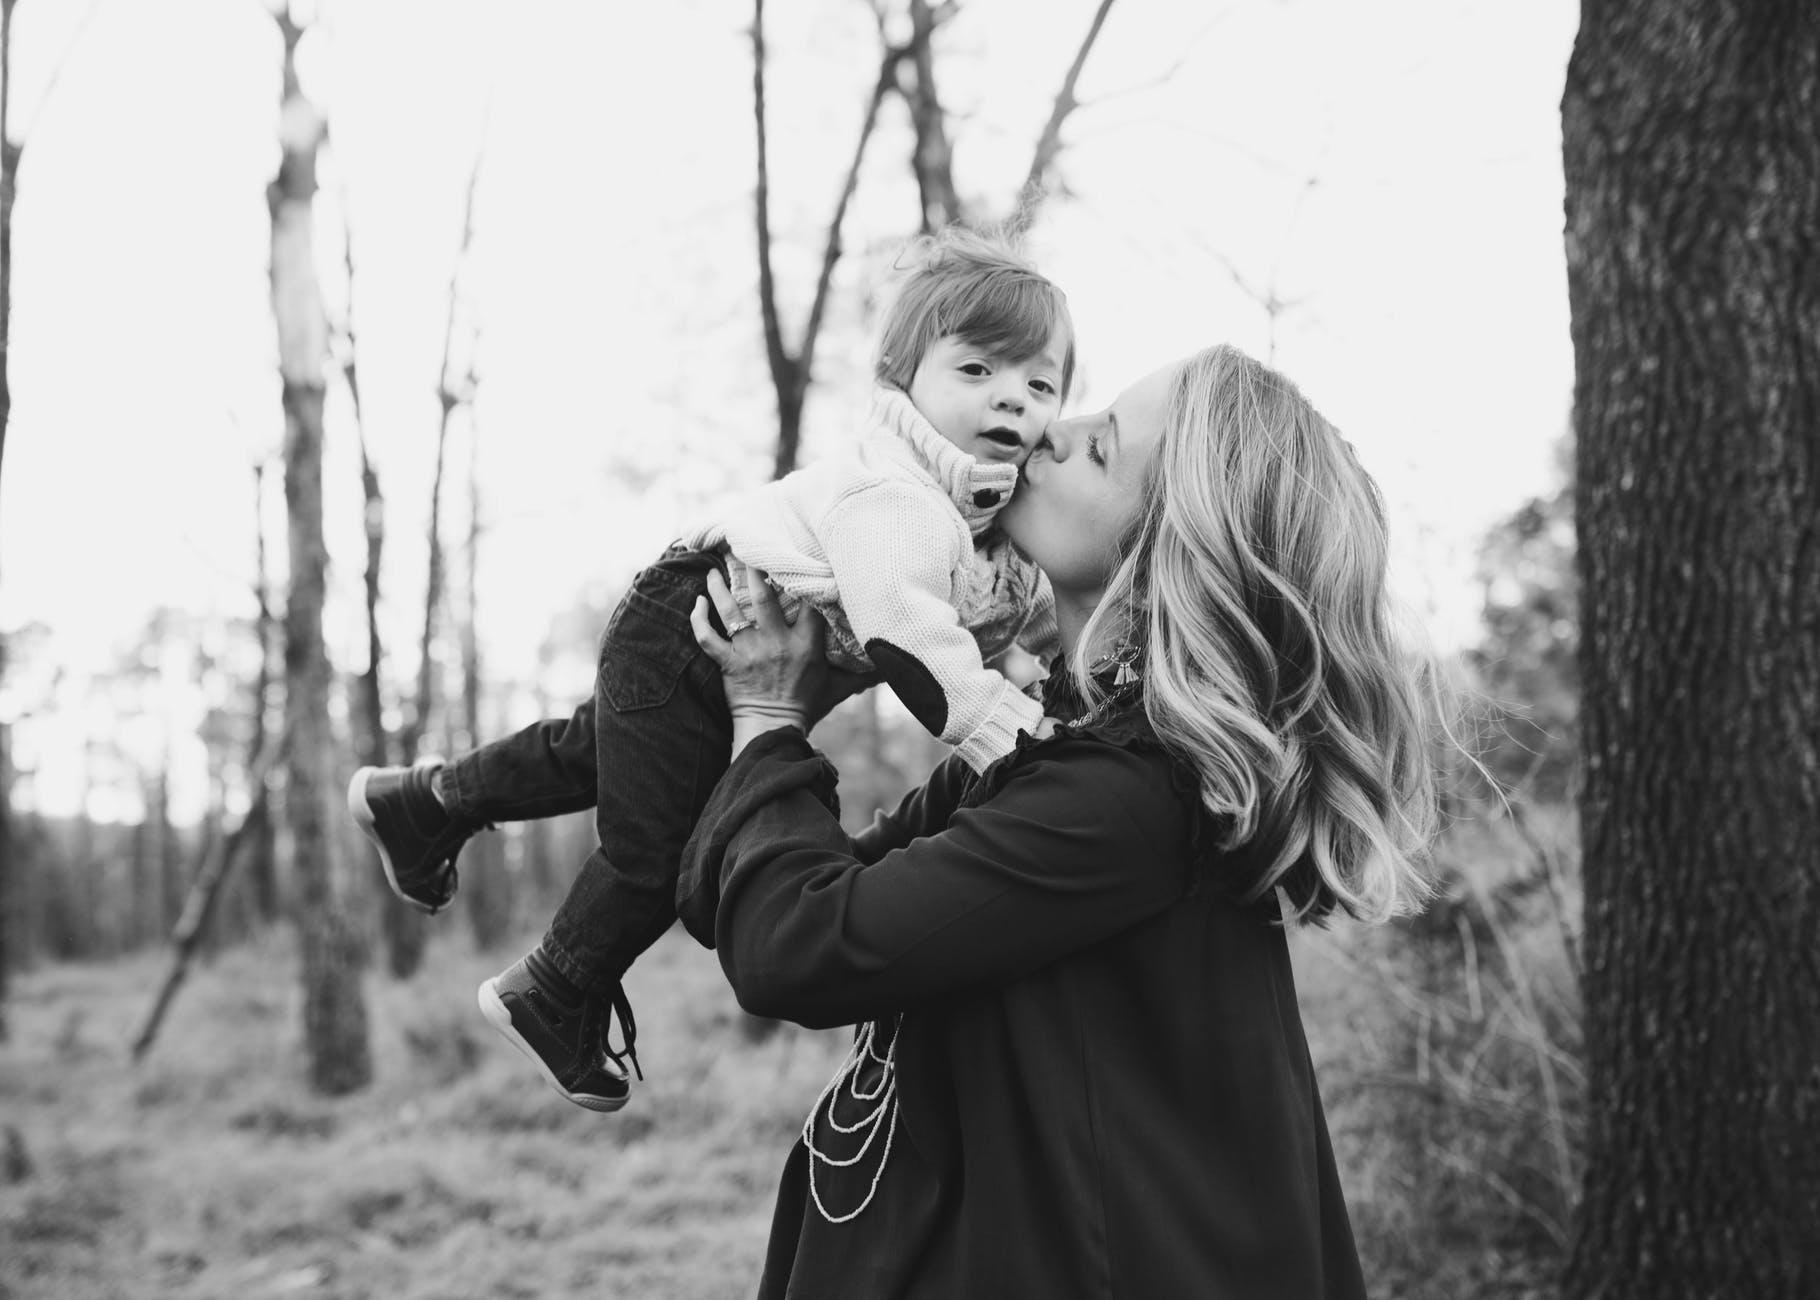 grayscale photo of woman kissing toddler on cheek standing beside tree